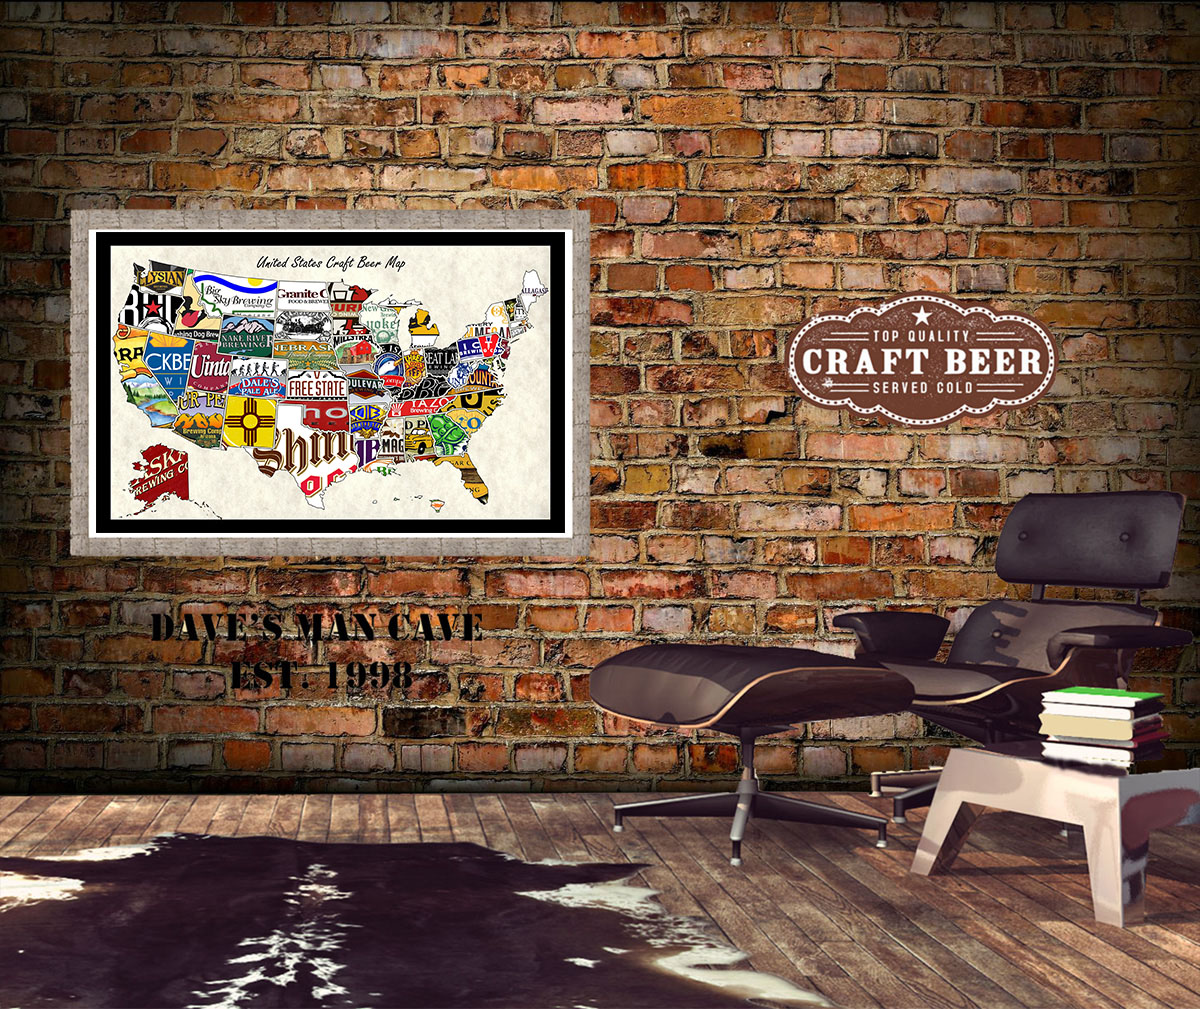 Man Cave Art Decor : United states craft beer wall map art poster of breweries